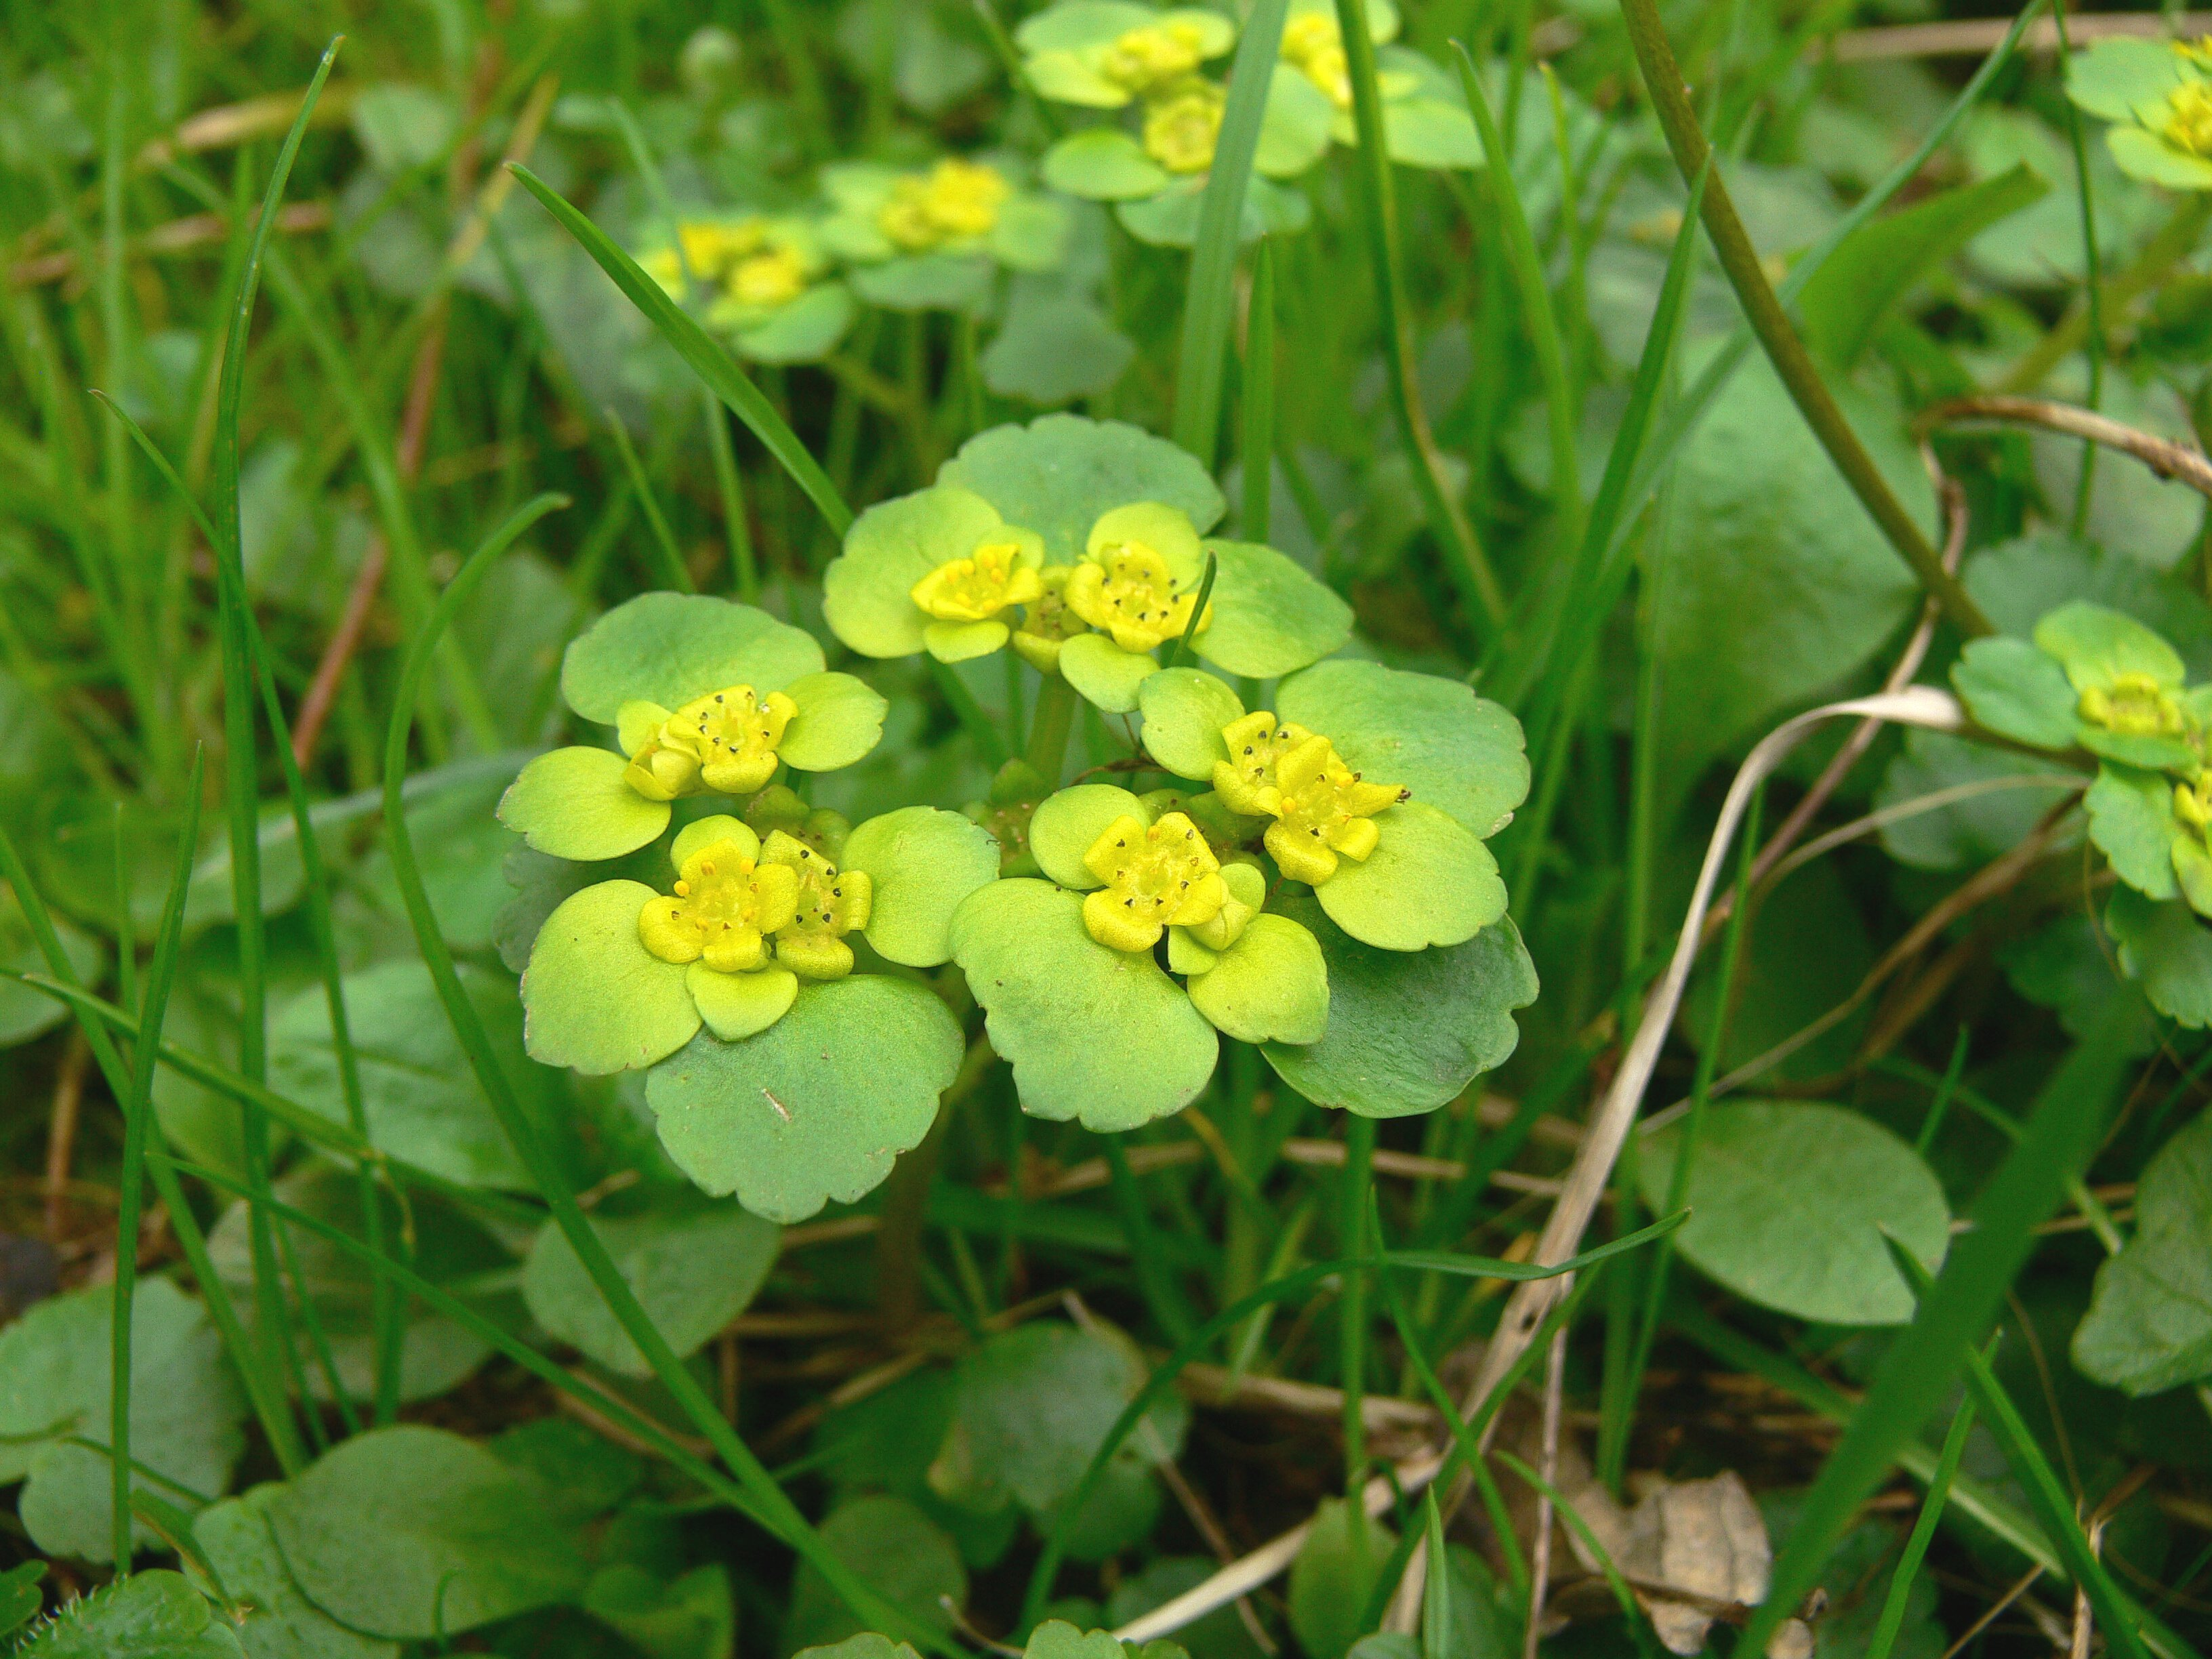 The Alternate-leaved Golden Saxifrage is larger than the more common Opposite-leaved Golden Saxifrage.